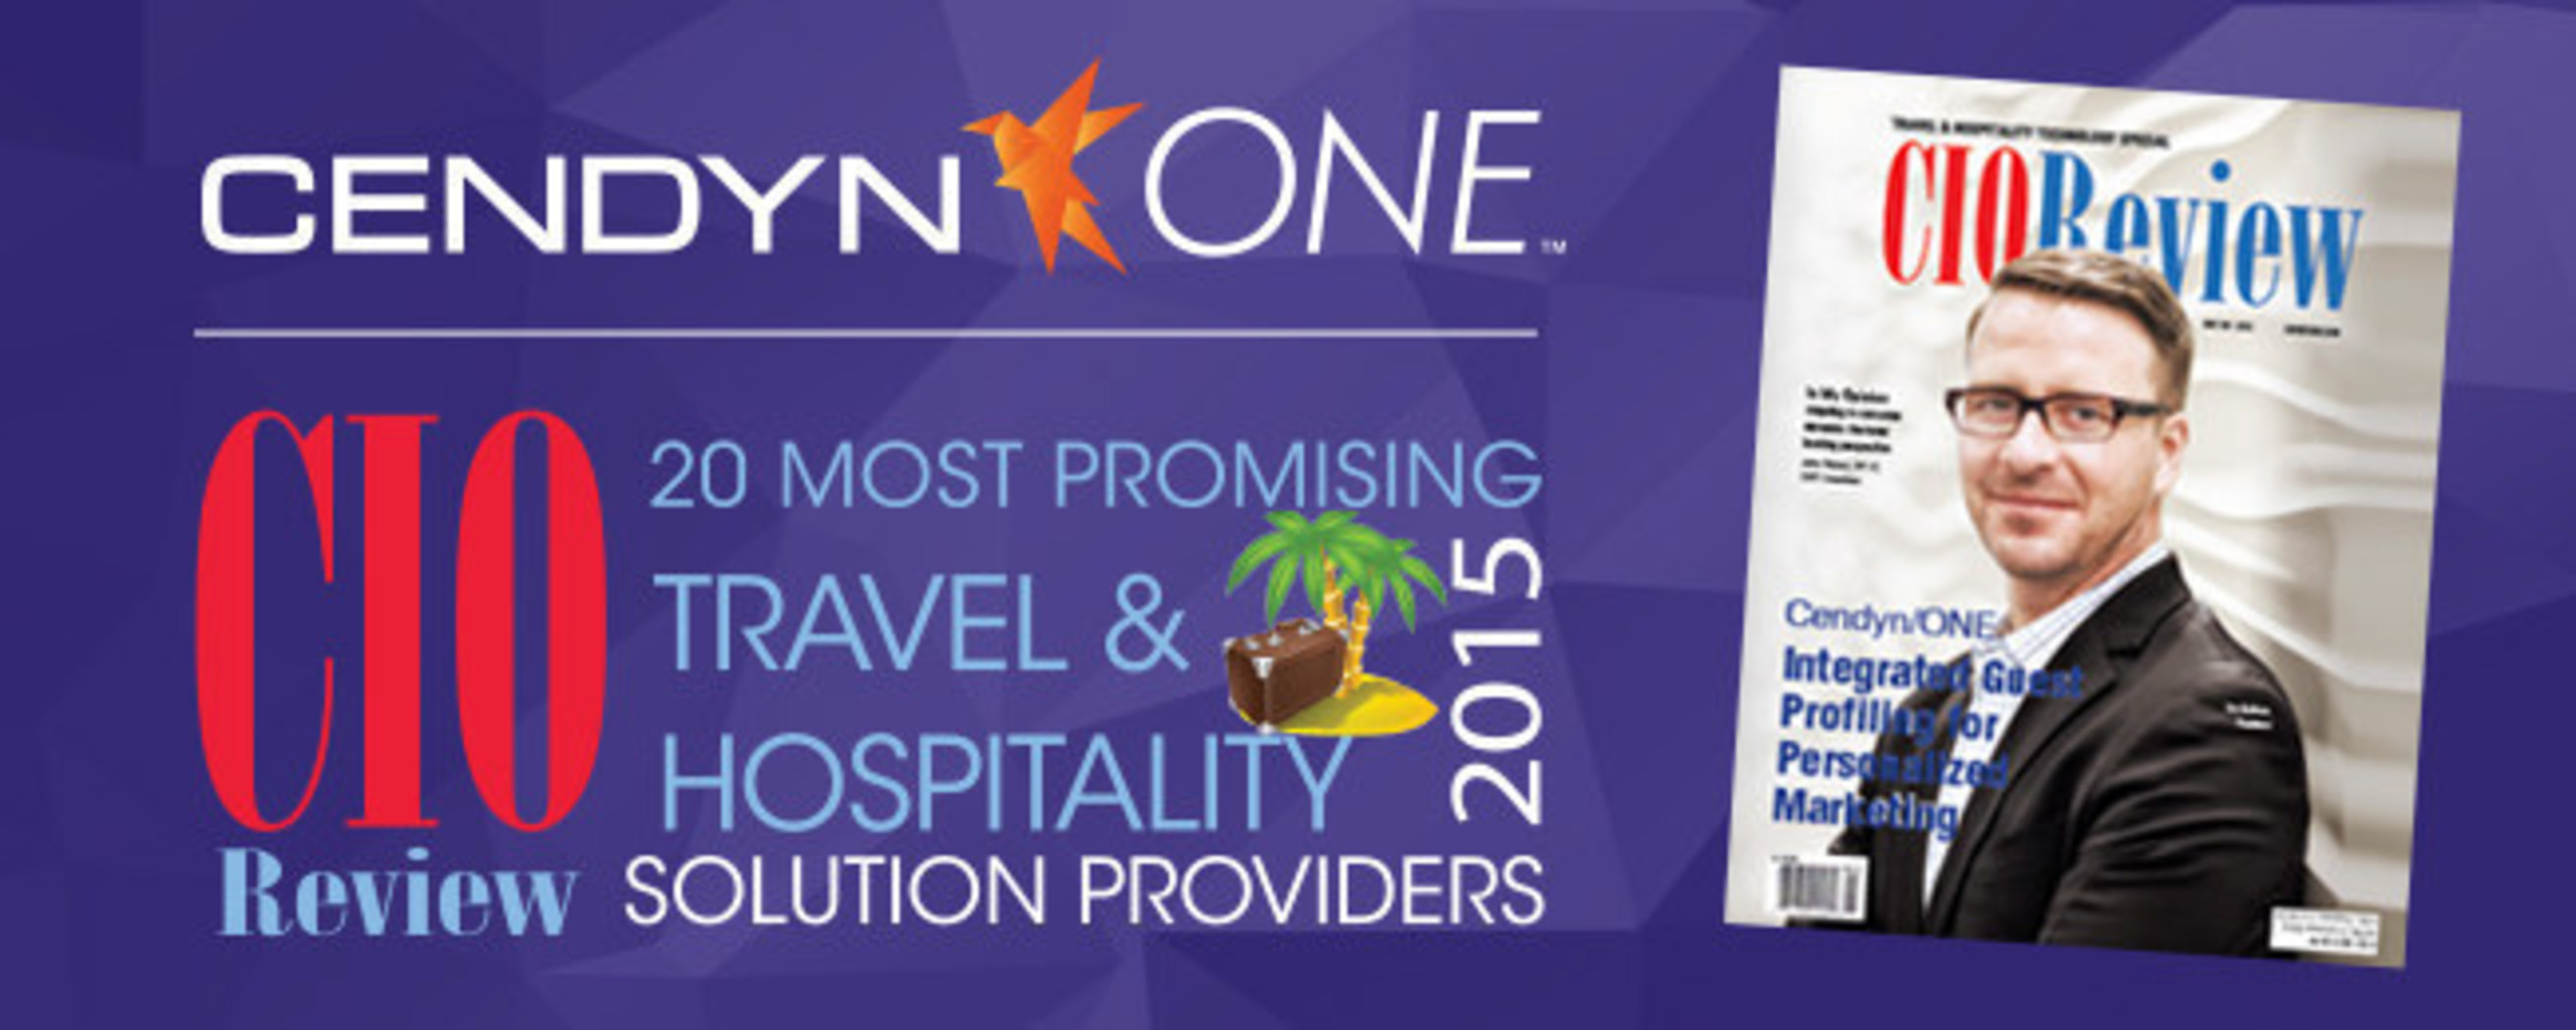 Cendyn/ONE™ named by CIO Review as one of the '20 Most Promising Travel & Hospitality Solution